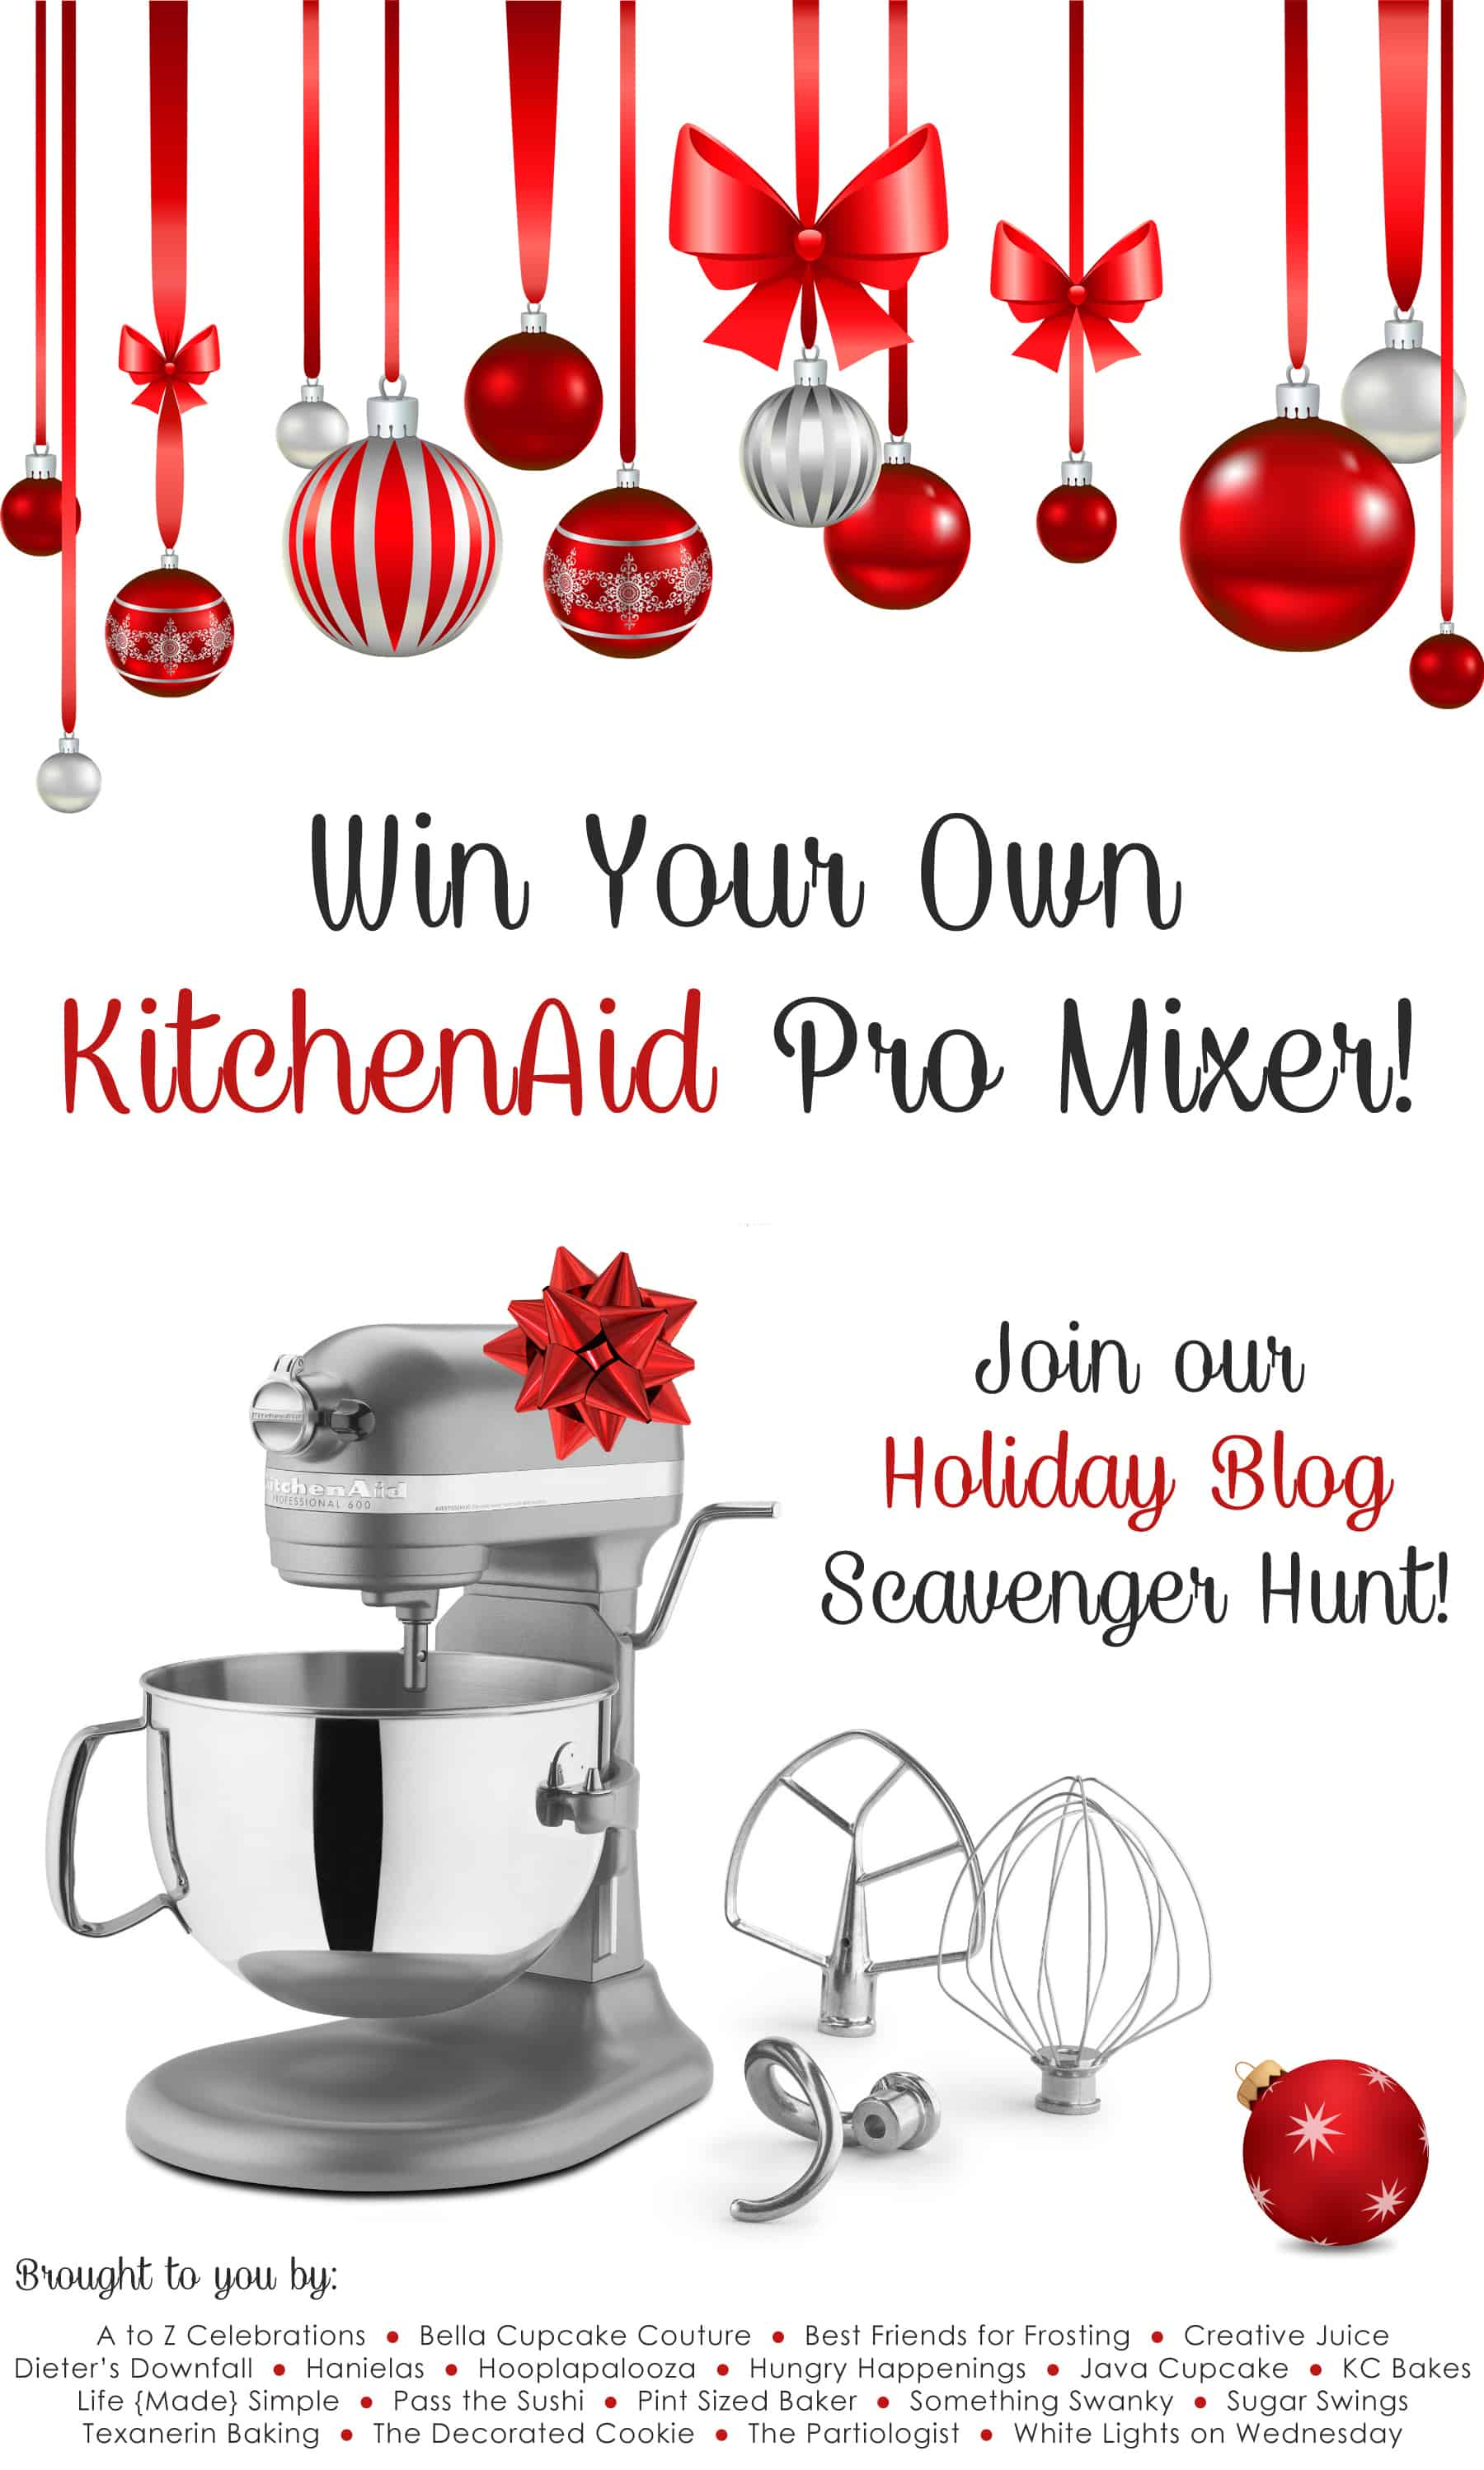 Win a KitchenAid Pro Mixer!